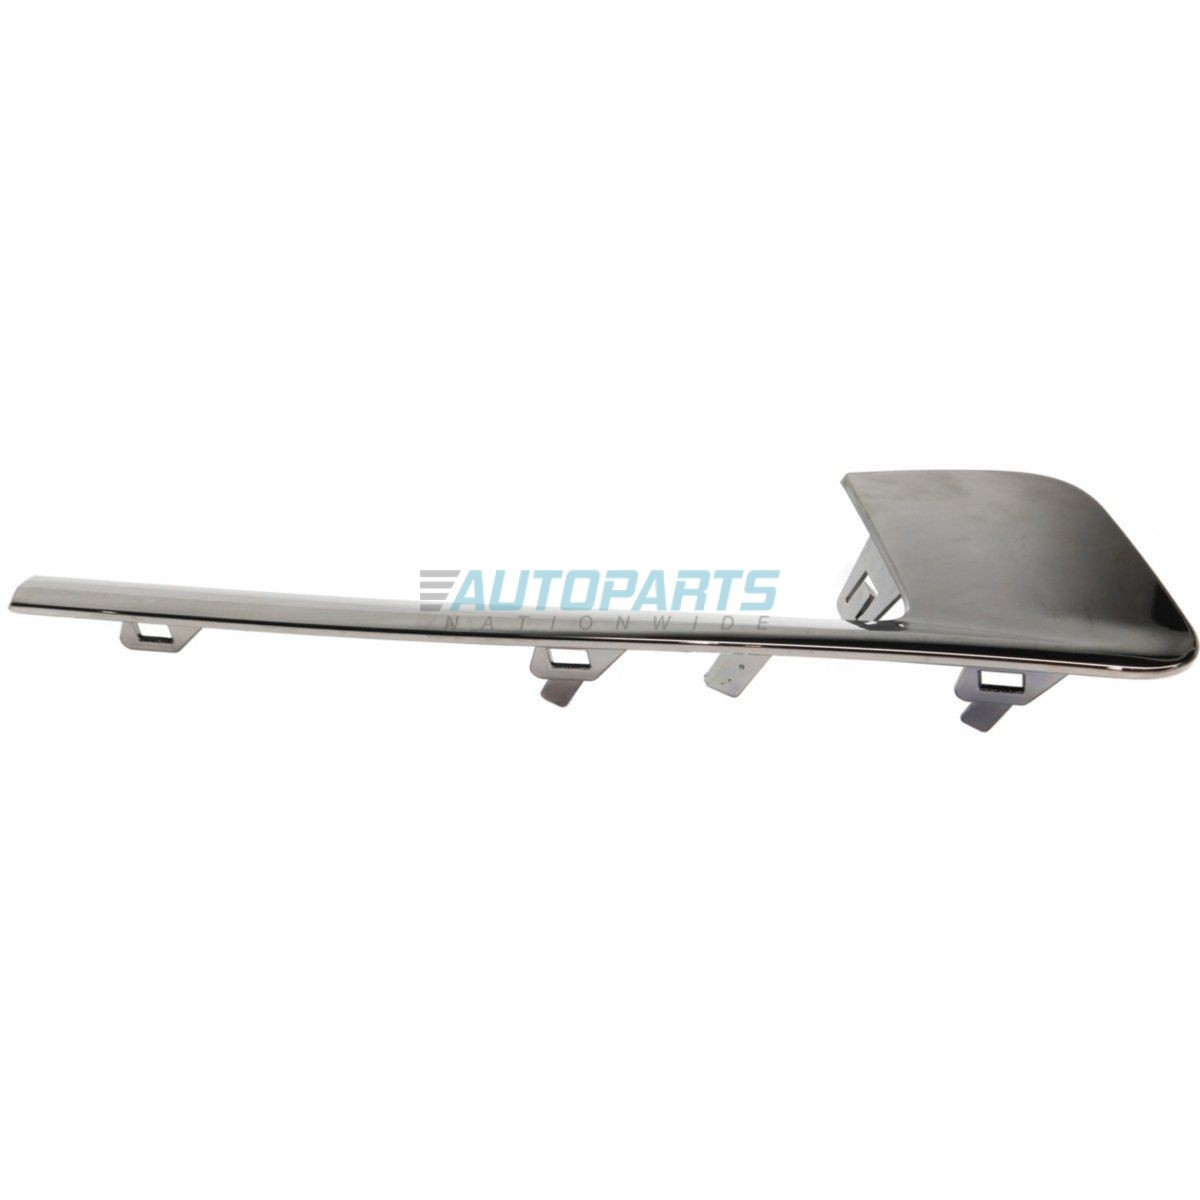 2014 Cadillac Cts V Sport Test Drive: NEW FRONT RIGHT BUMPER MOLDING FITS 2014-2018 CADILLAC CTS